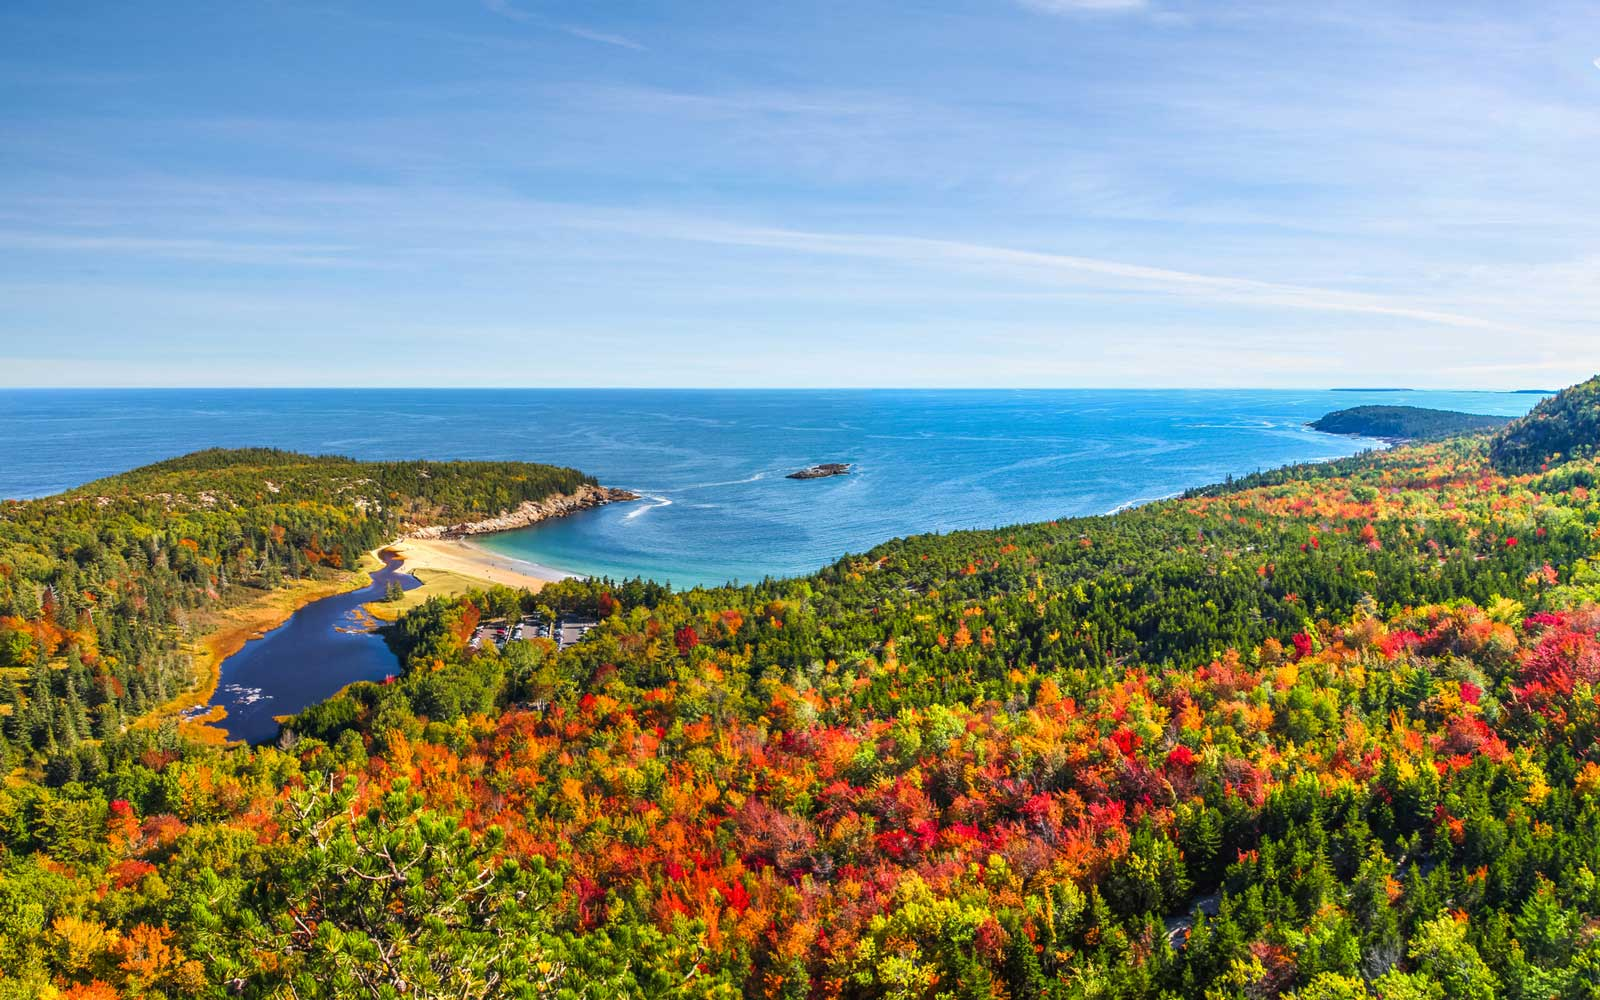 Bay in Acadia National Park